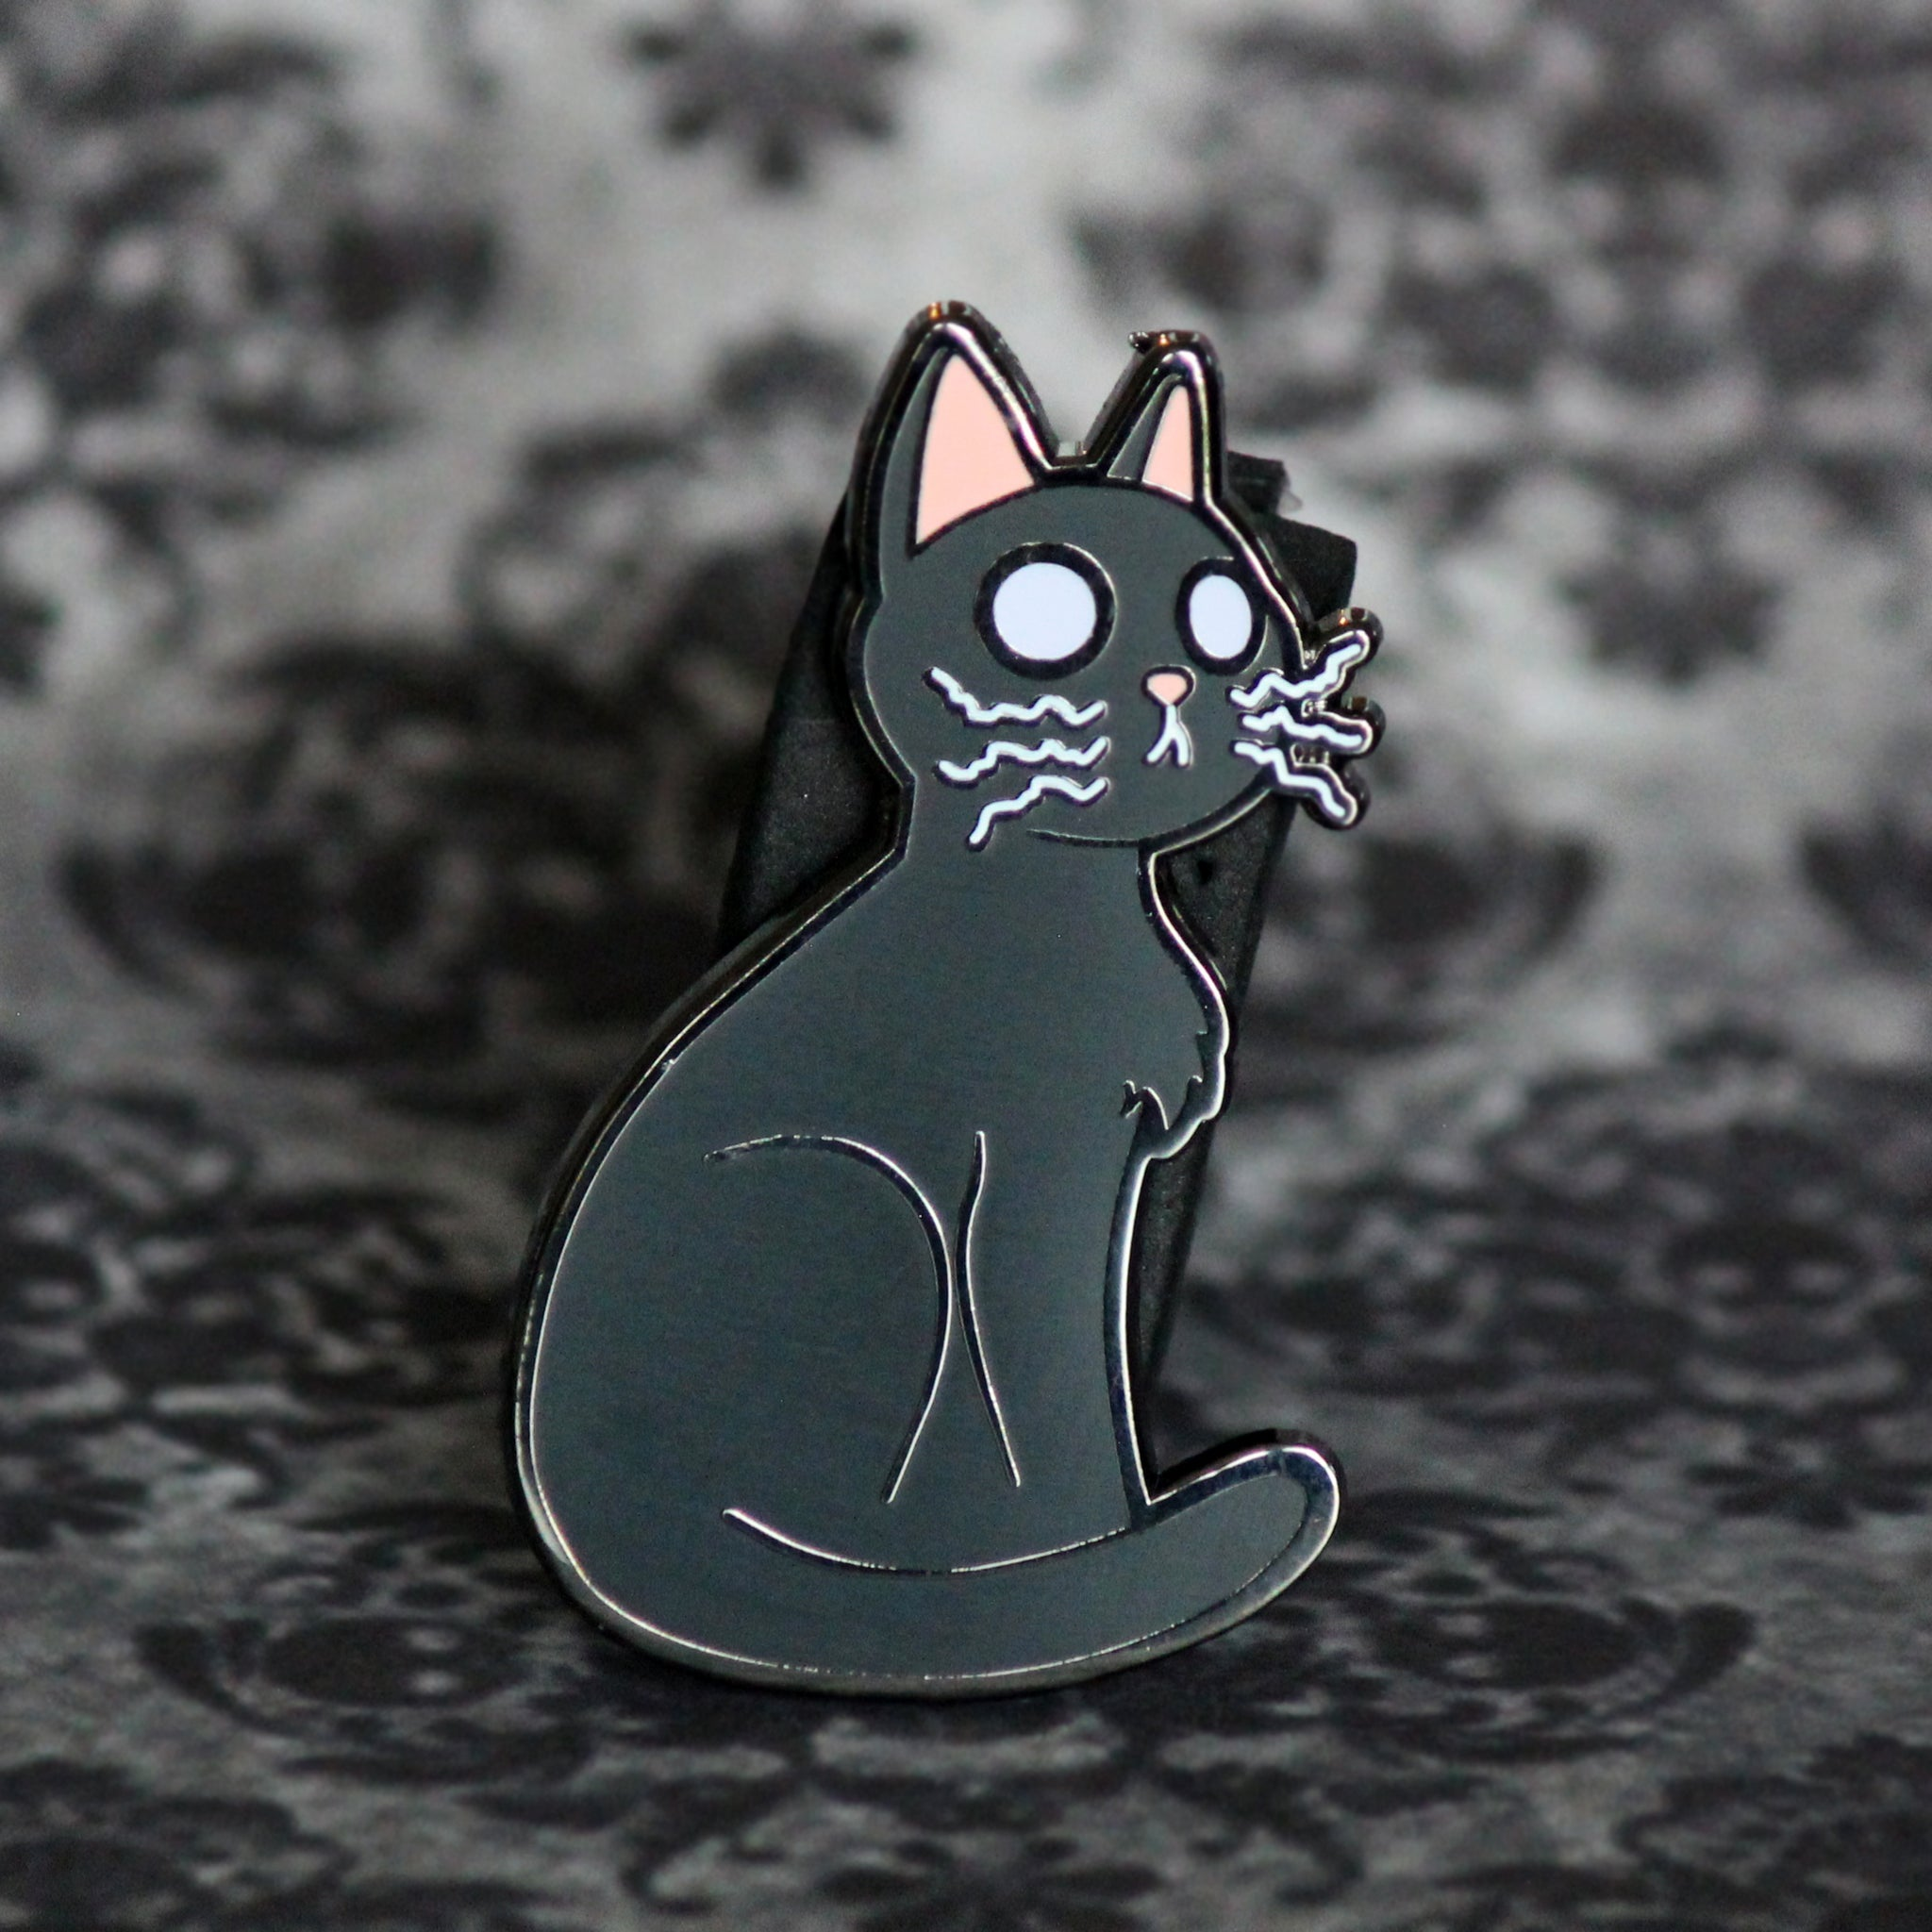 "2"" Hard Enamel Pin Cerin the Spirit Catcher with Glow in the Dark Eyes"